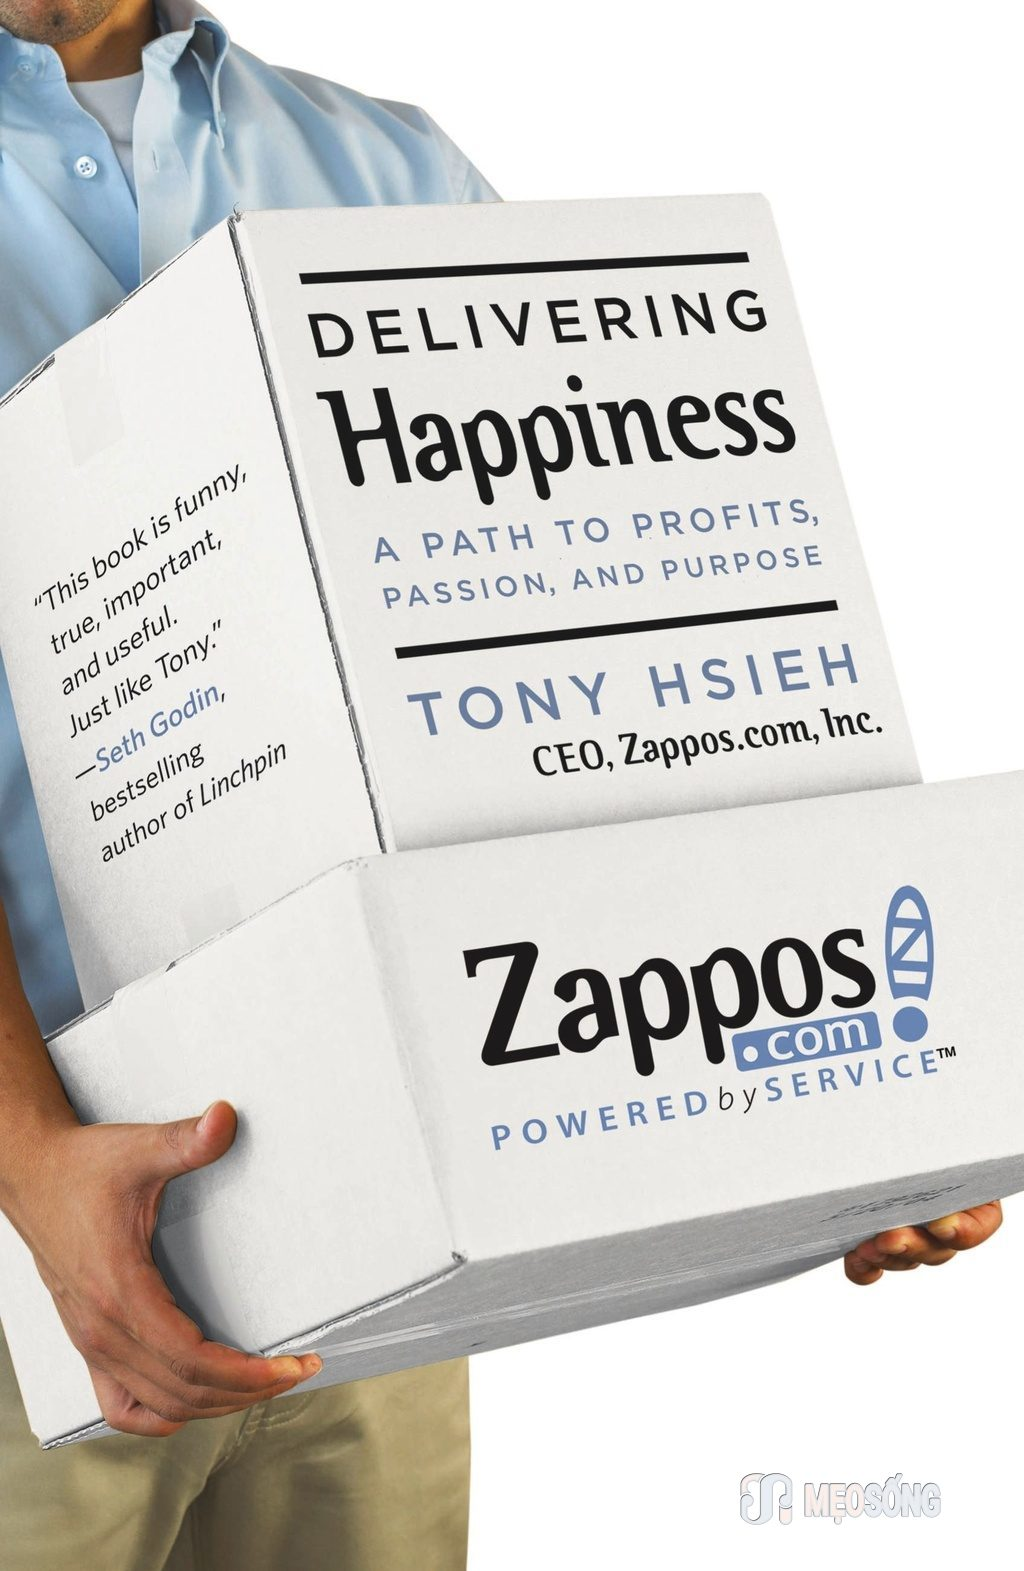 Delivery Happiness: A Path to Profits, Passions, and Purpose by Tony Hsieh